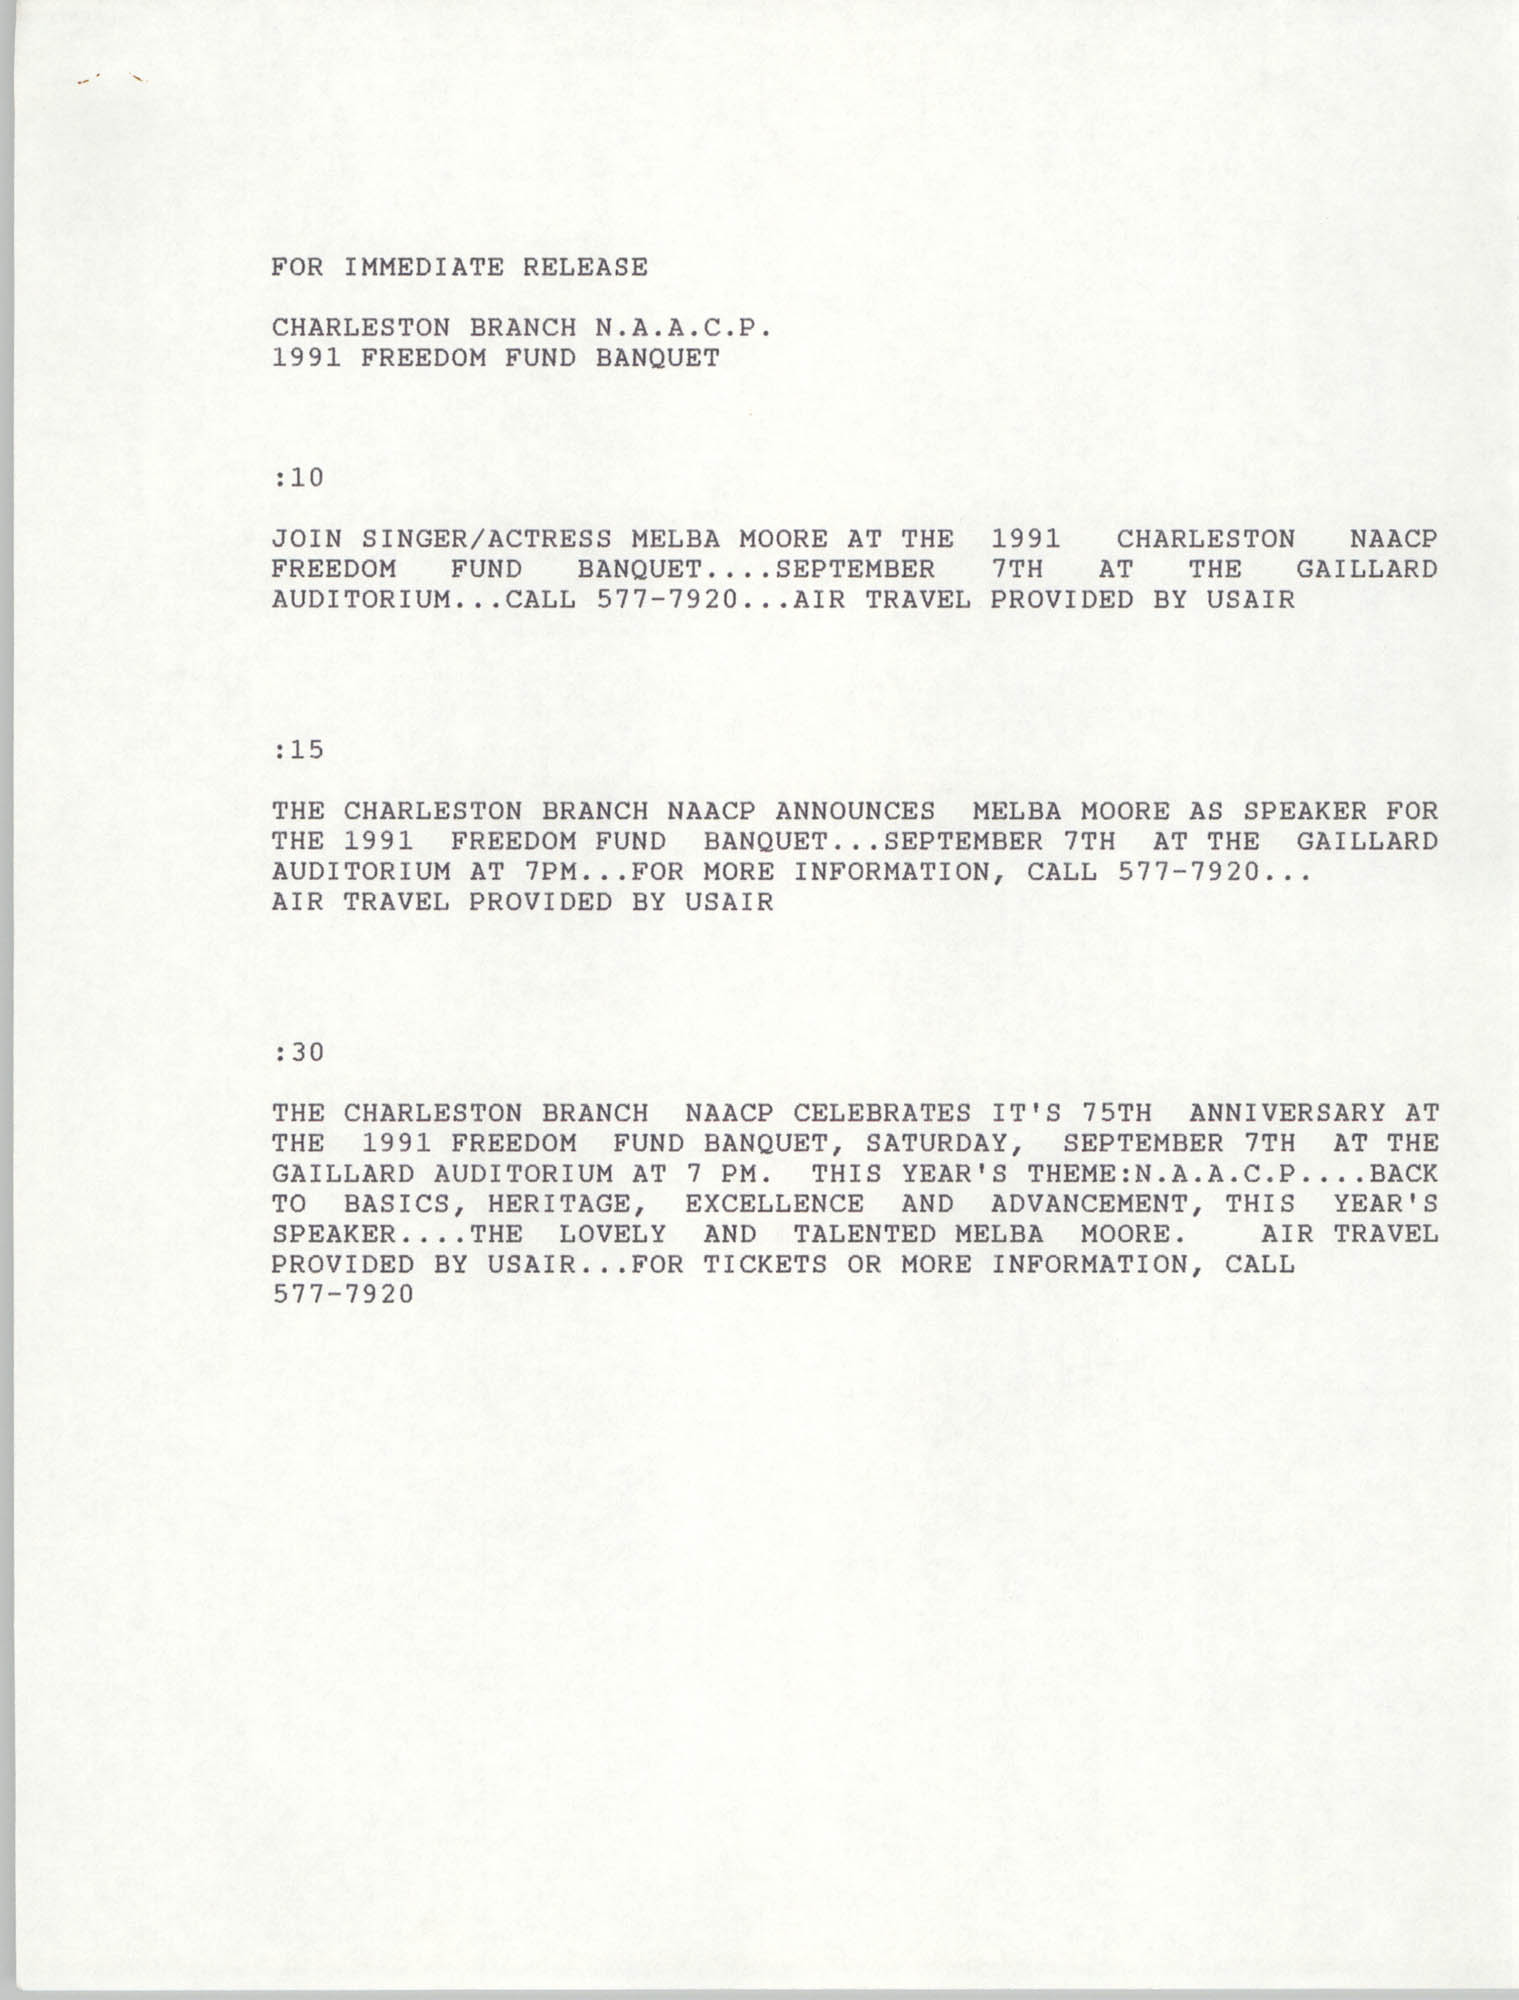 Press Release, 1991 Freedom Fund Banquet, National Association for the Advancement of Colored People